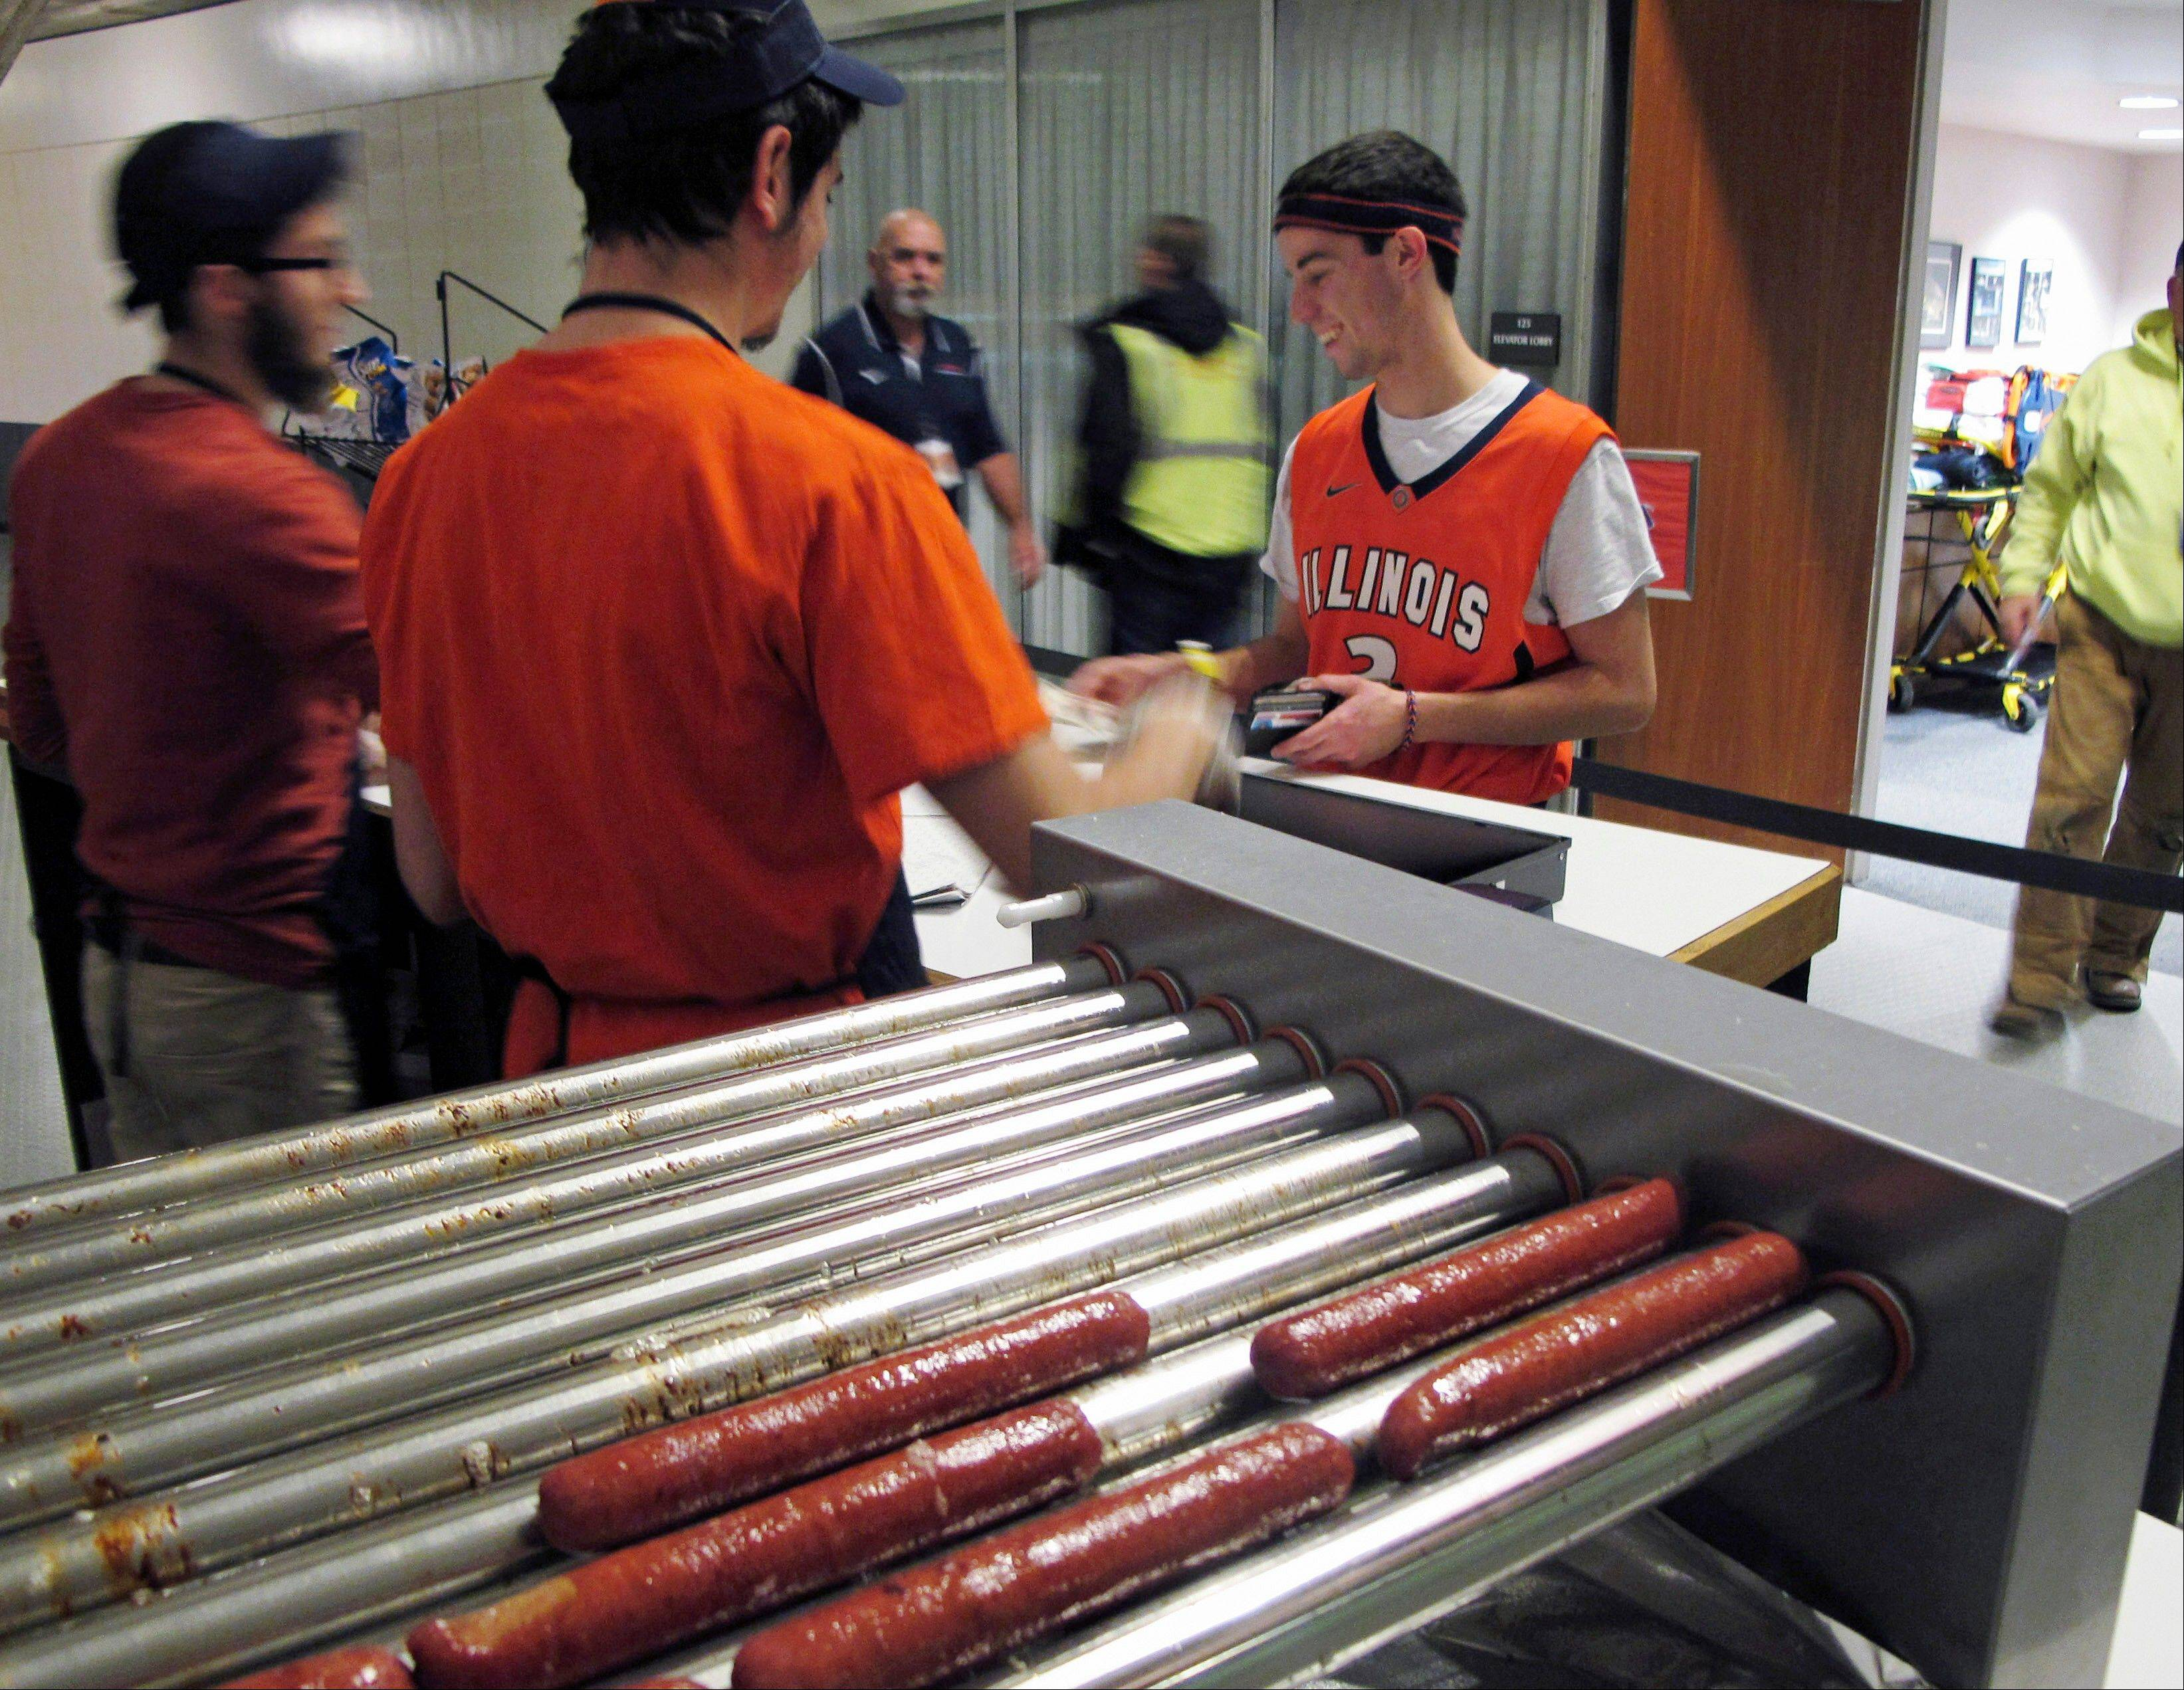 An Illini basketball fan buys a kosher hot dog from Mordy Kurtz, left, and Yosef Peysin on Sunday at the kosher food stand at the university's State Farm Center basketball arena in Champaign.